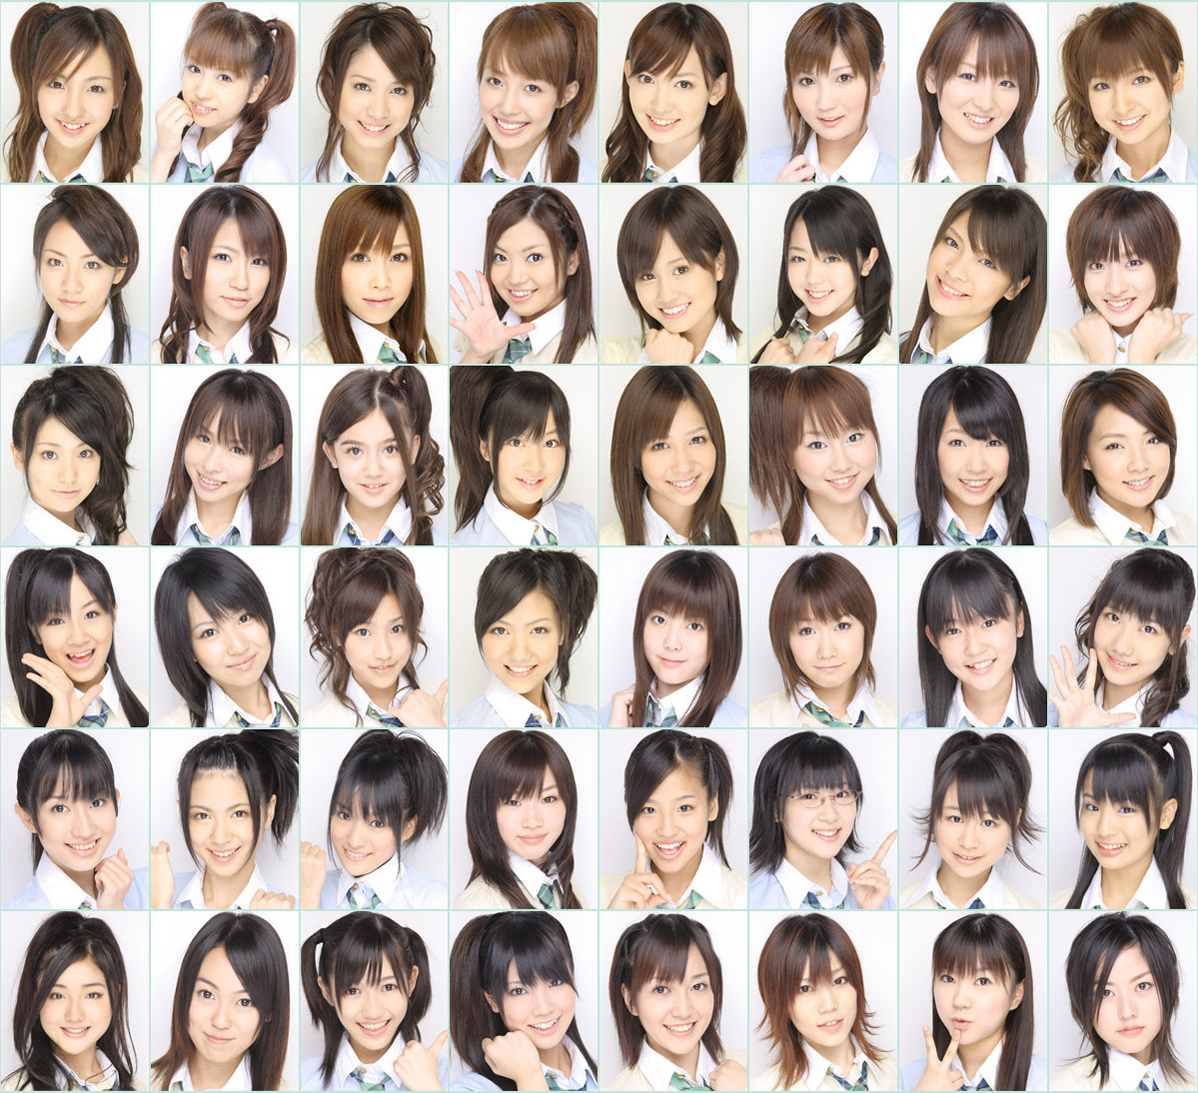 List of AKB48 members